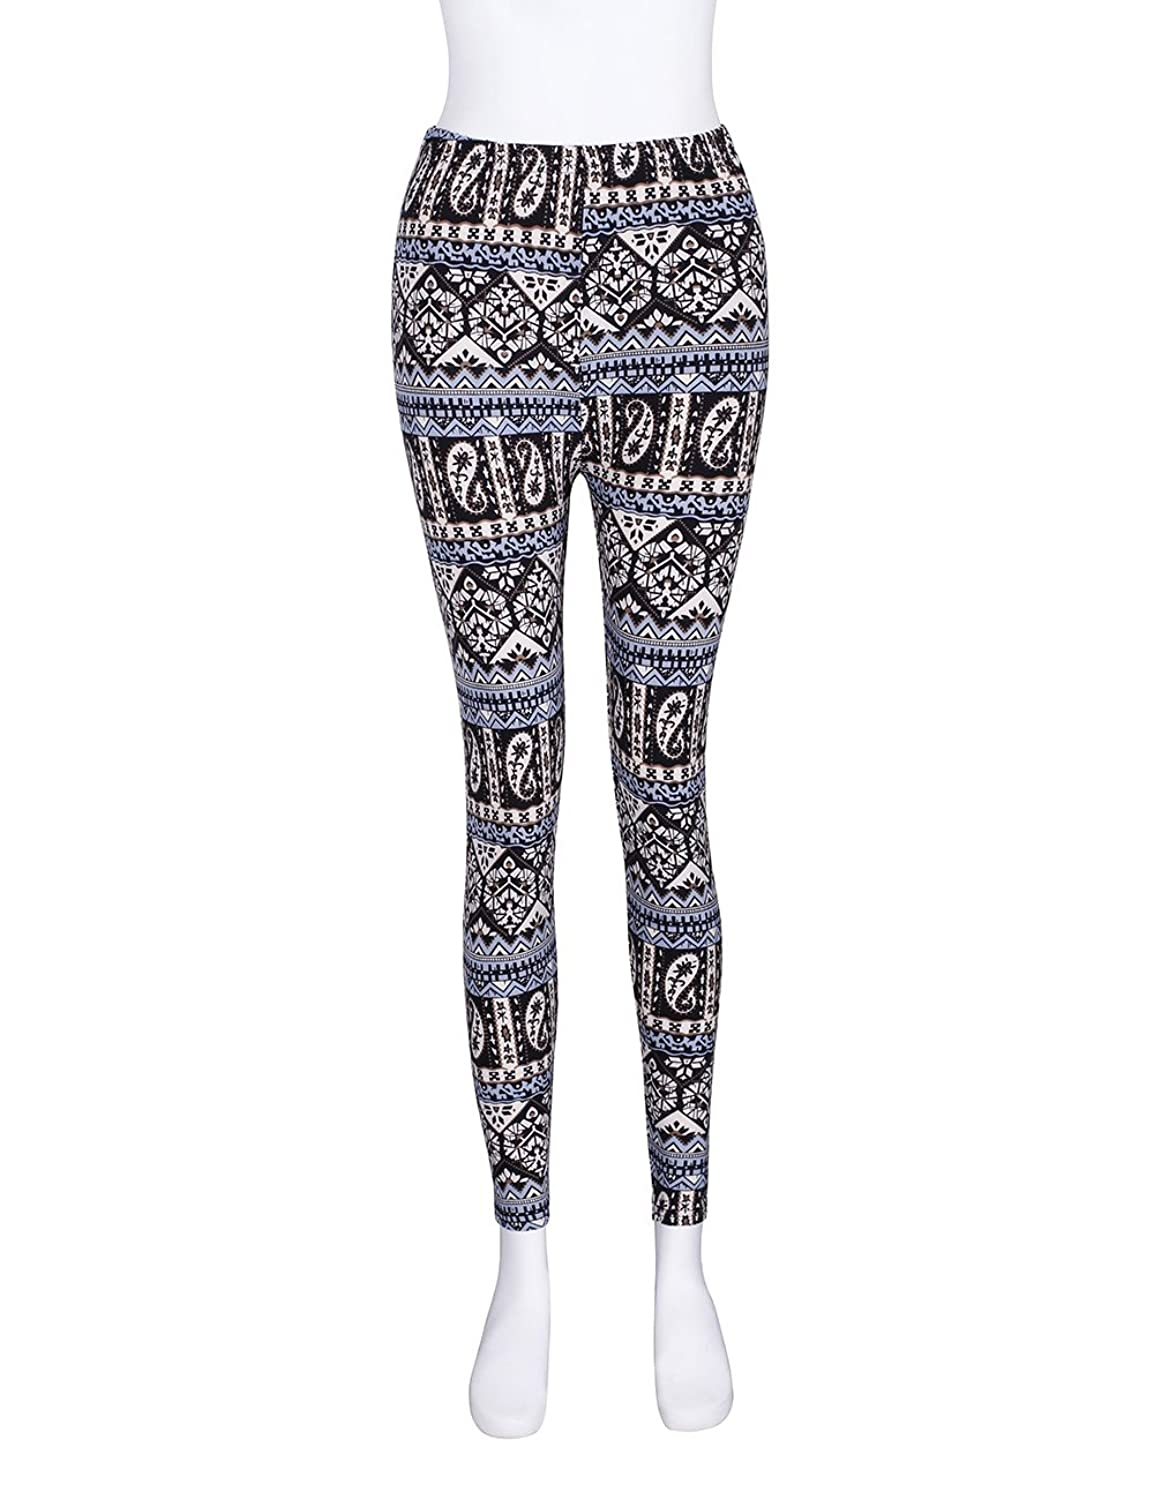 a6f3326675911 ADAMARIS Leggings for Women Casual Printed Milk Silk Soft Elastic Skinny  Yoga Tights